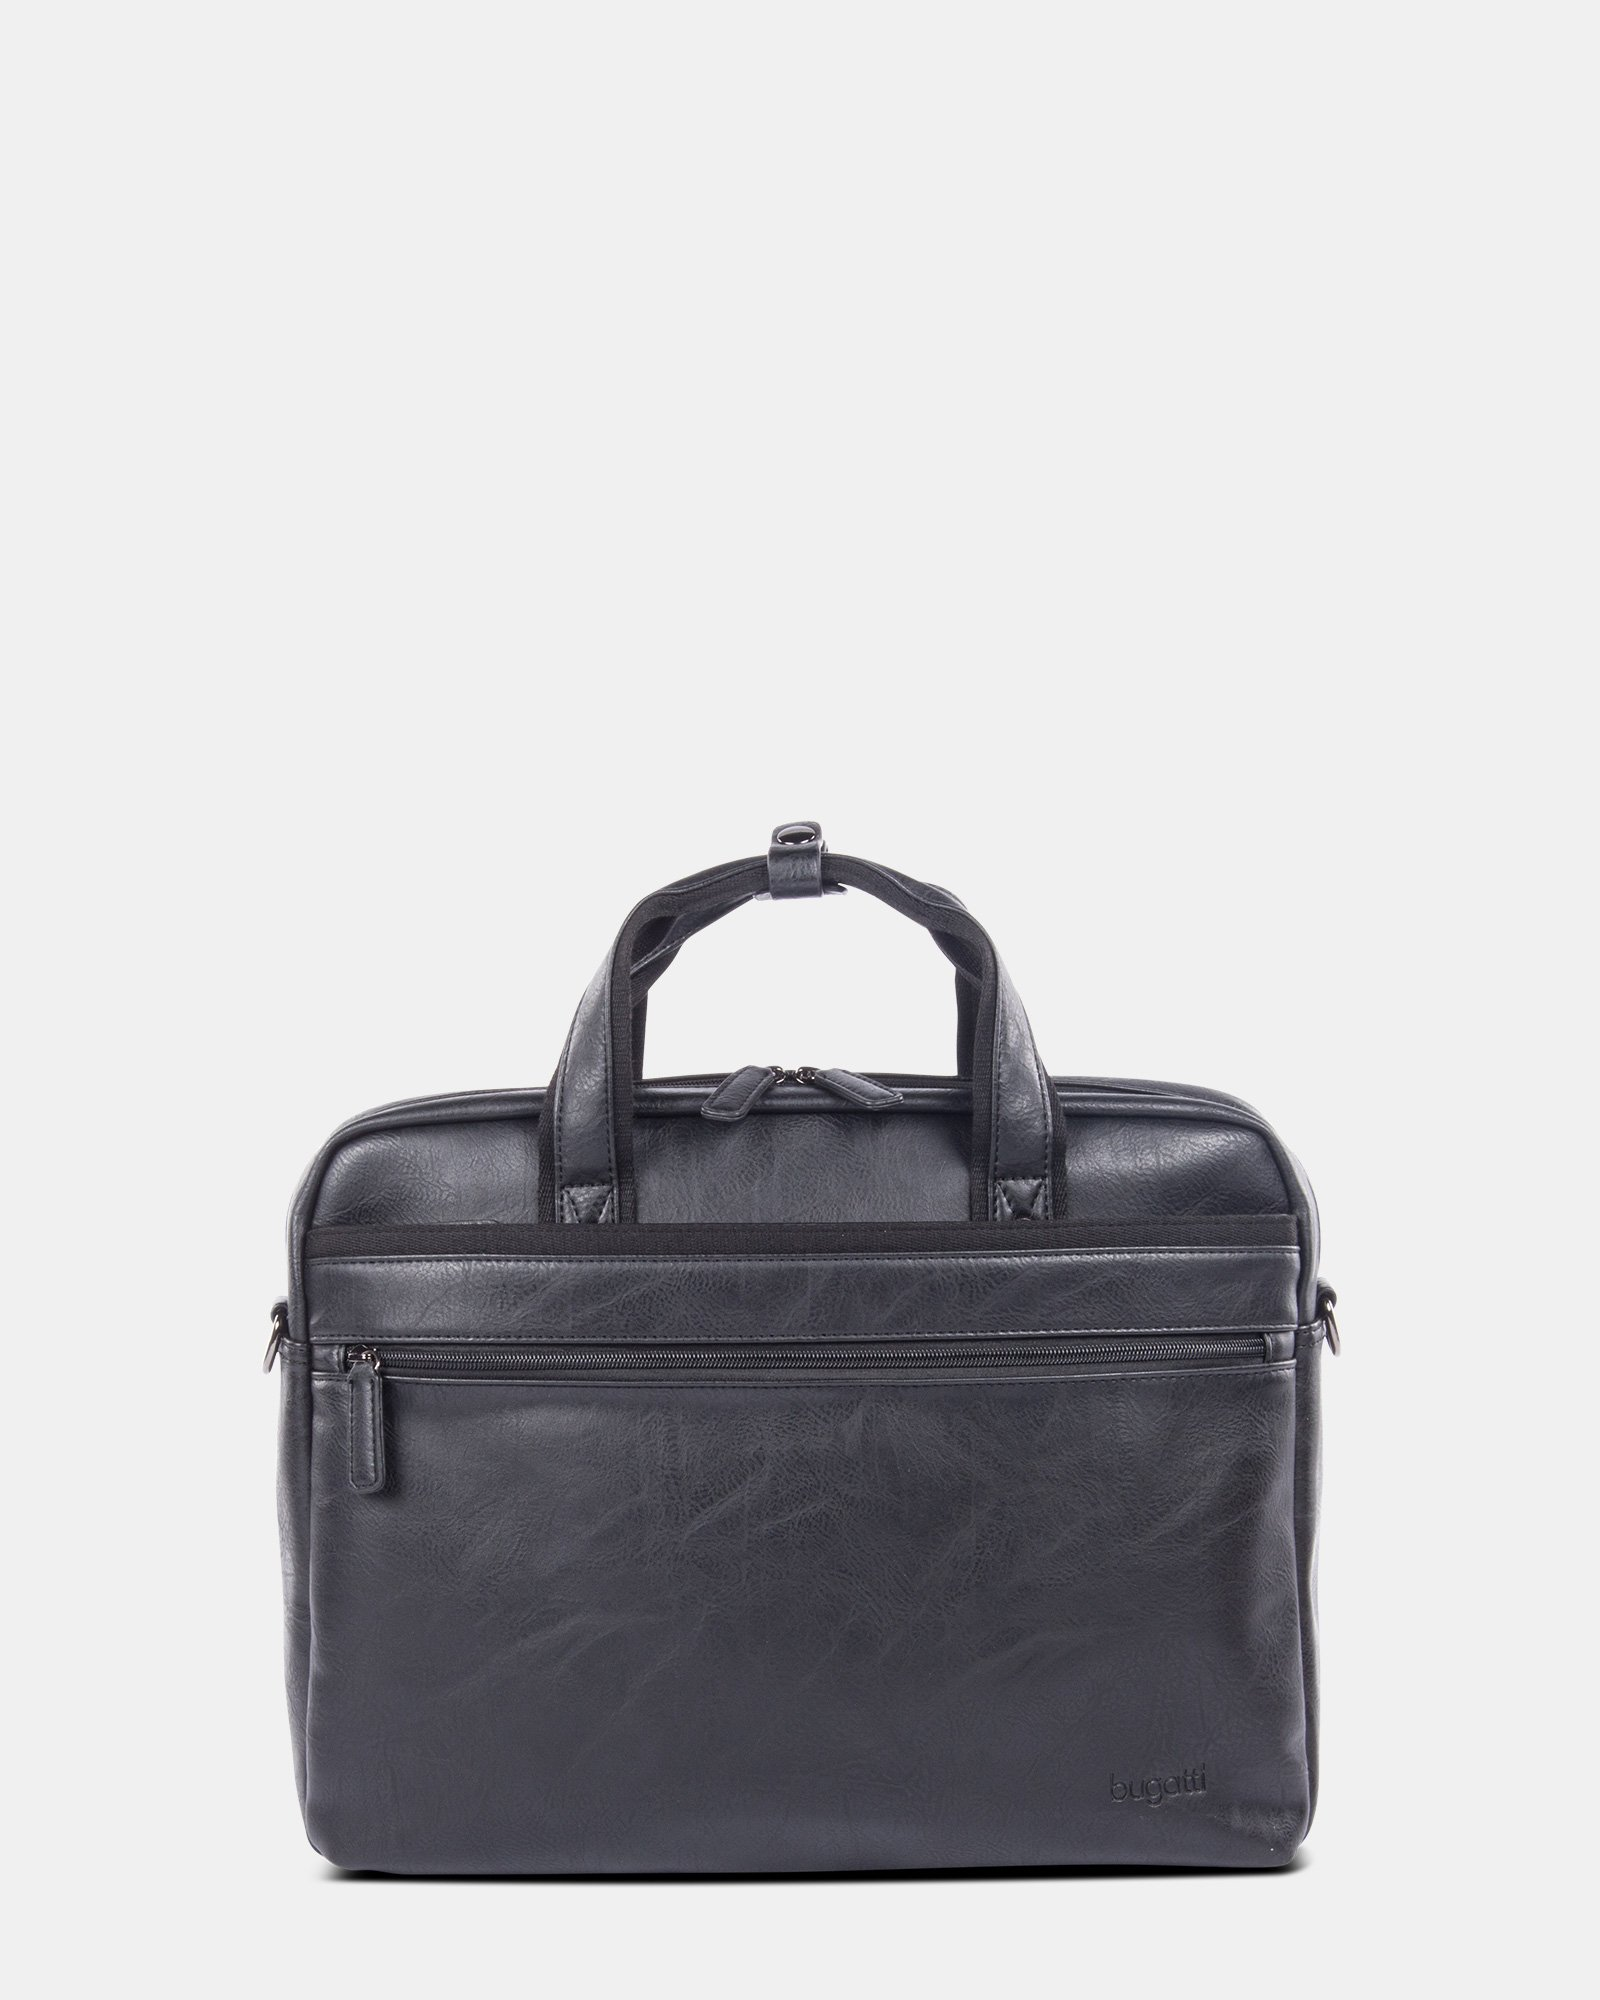 """Valentino - briefcase for 15.6"""" laptop with Removable and adjustable shoulder strap - Black  - Bugatti - Zoom"""